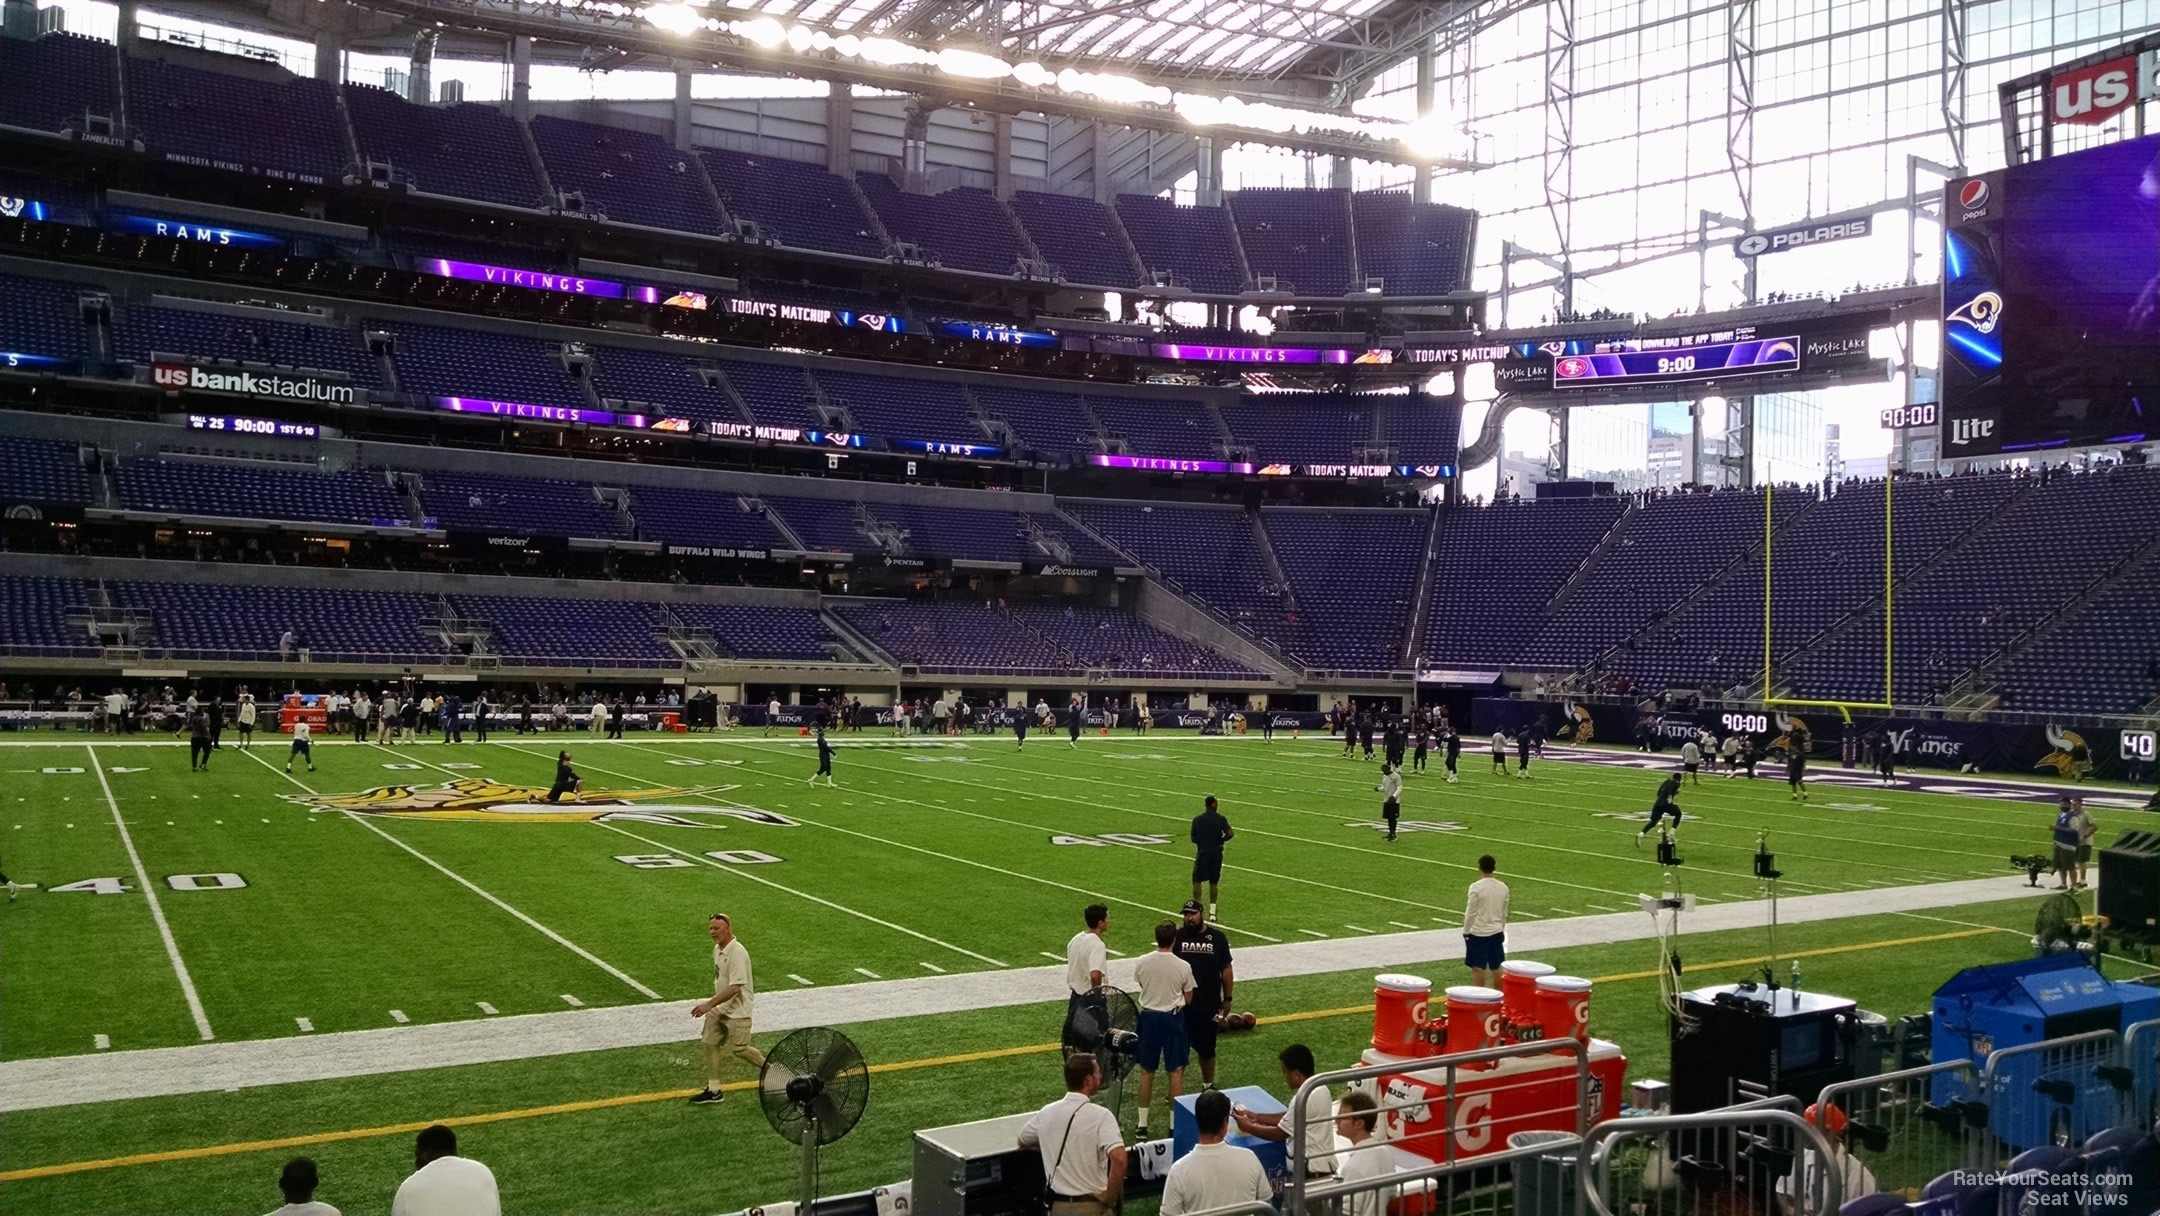 U.S. Bank Stadium Visiting Team Fans